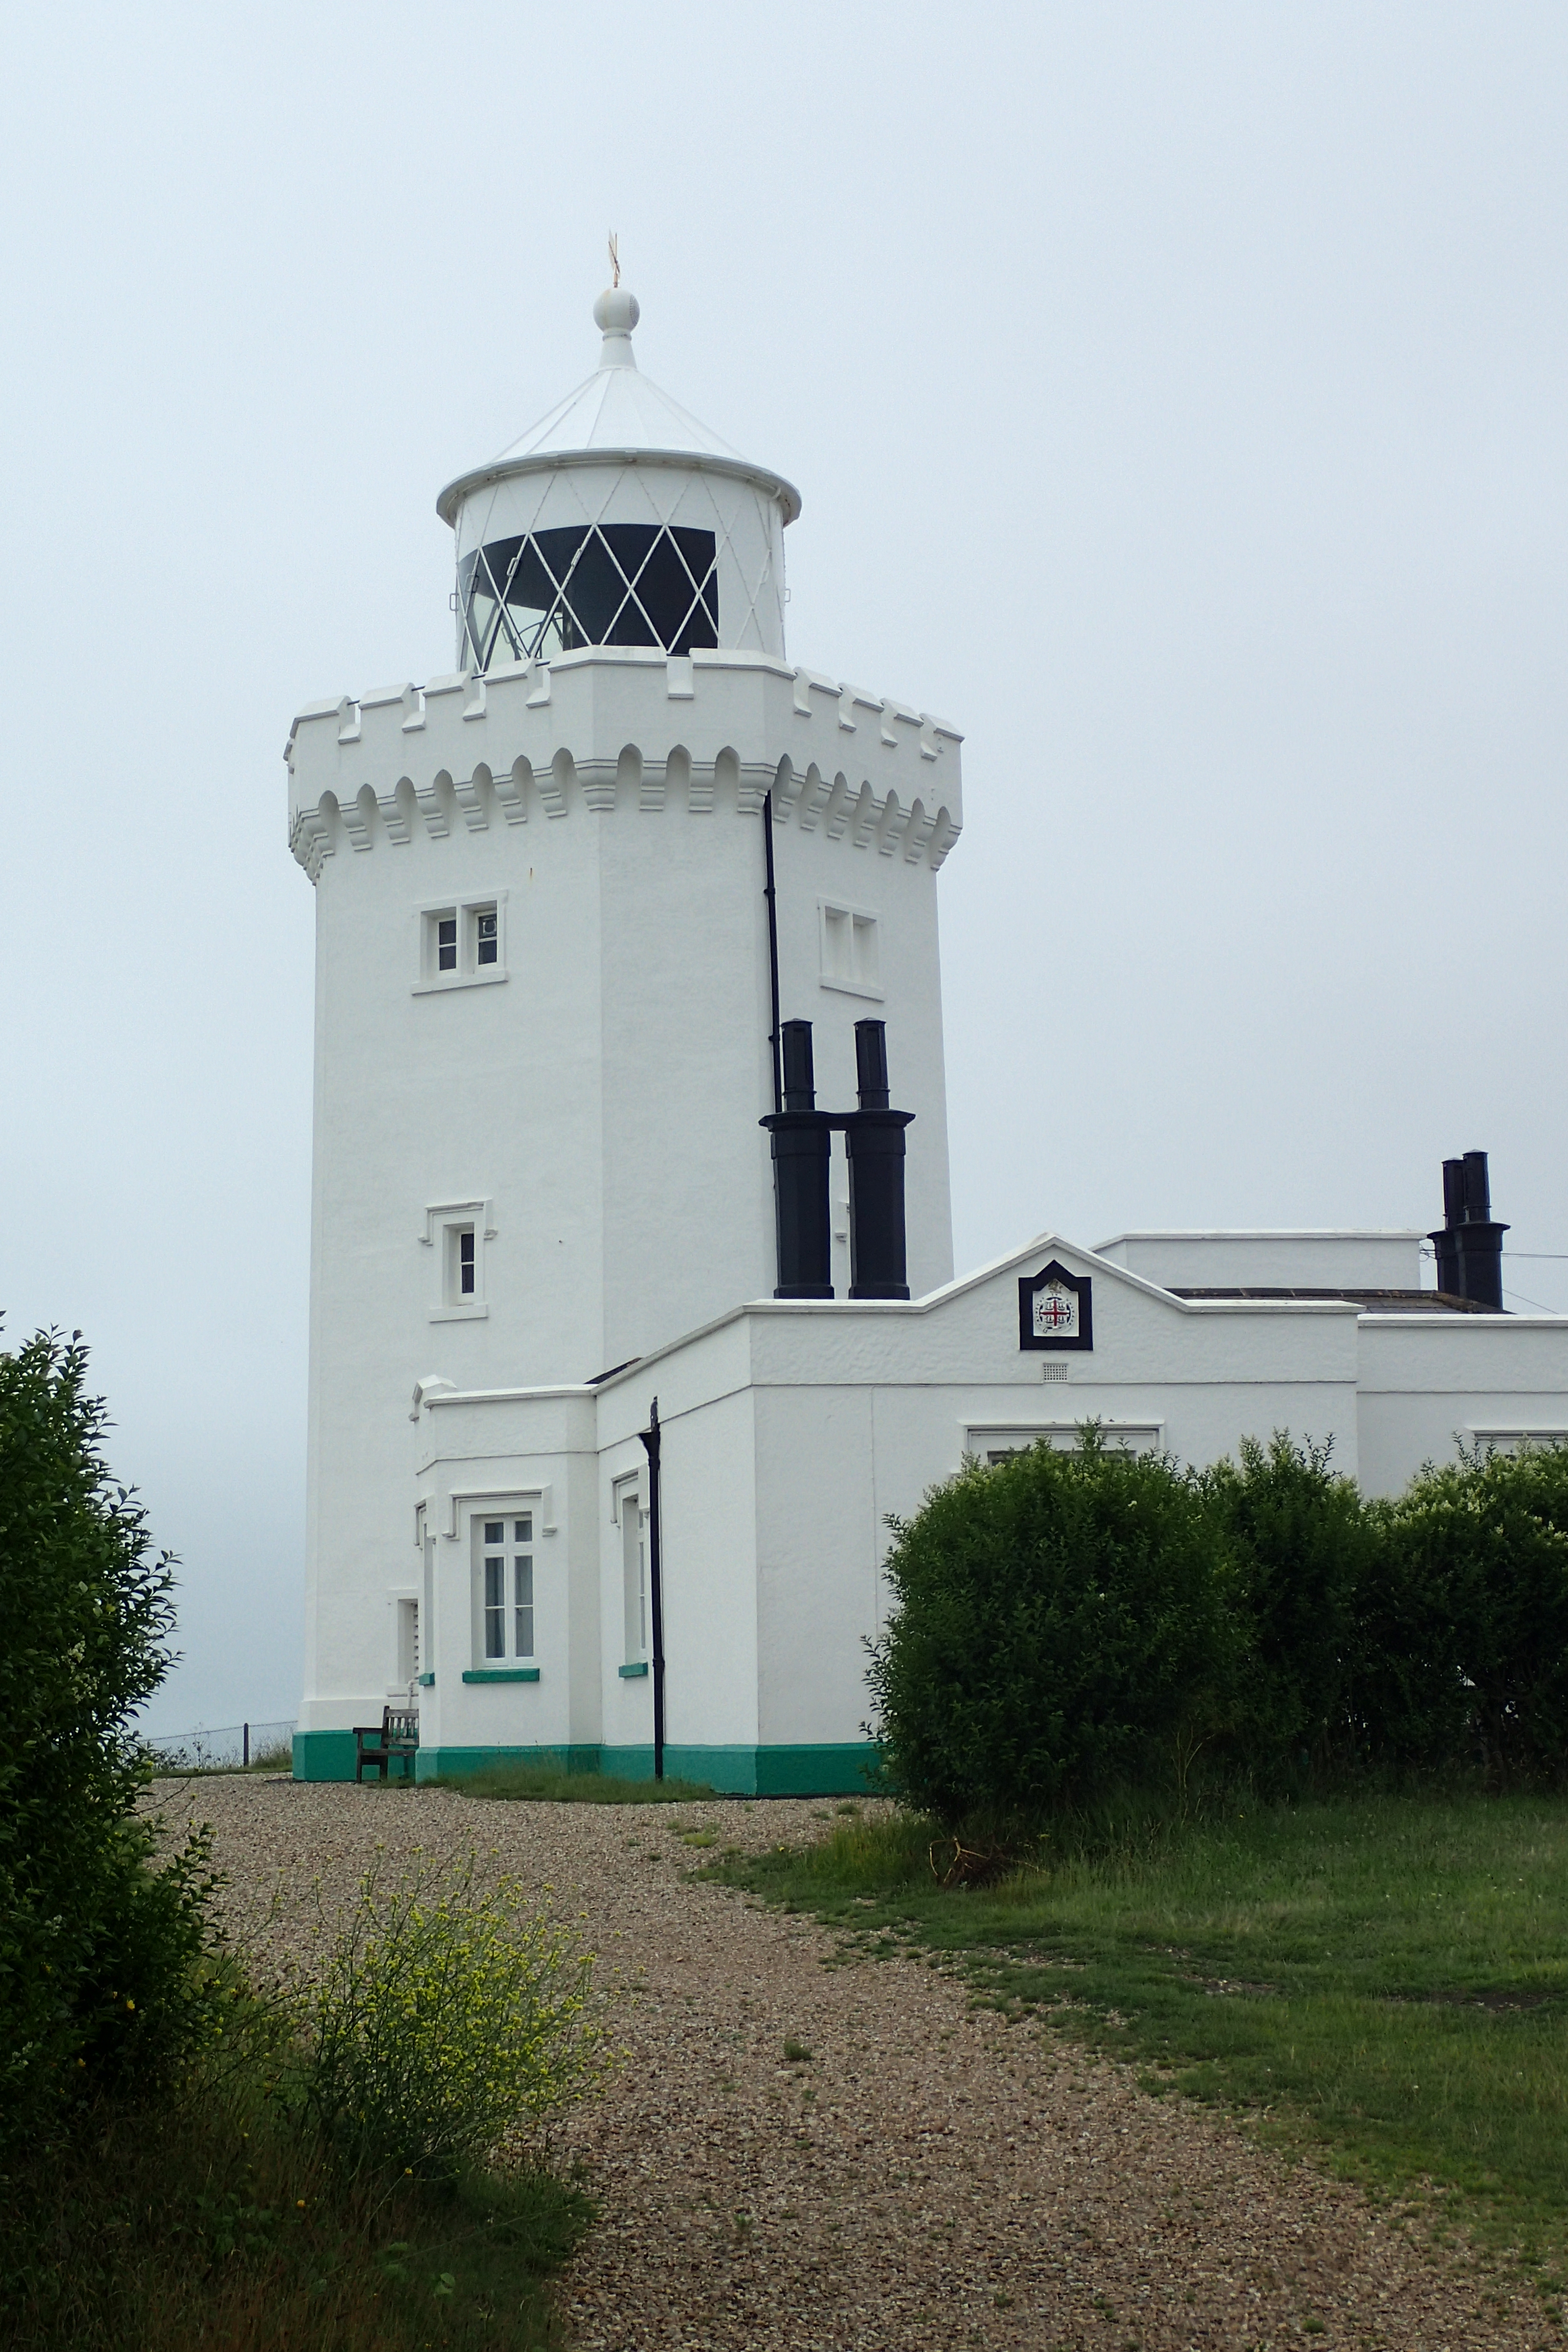 South Foreland Lighthouse. Built in 1843. Under Faraday's supervision, in 1858 it became the first lighthouse in the world to utilise an electric light. In 1898 it was chosen by Marconi for his experiments with wireless radio transmissions. The first ship to shore transmission was made that year followed by the first international message in 1899